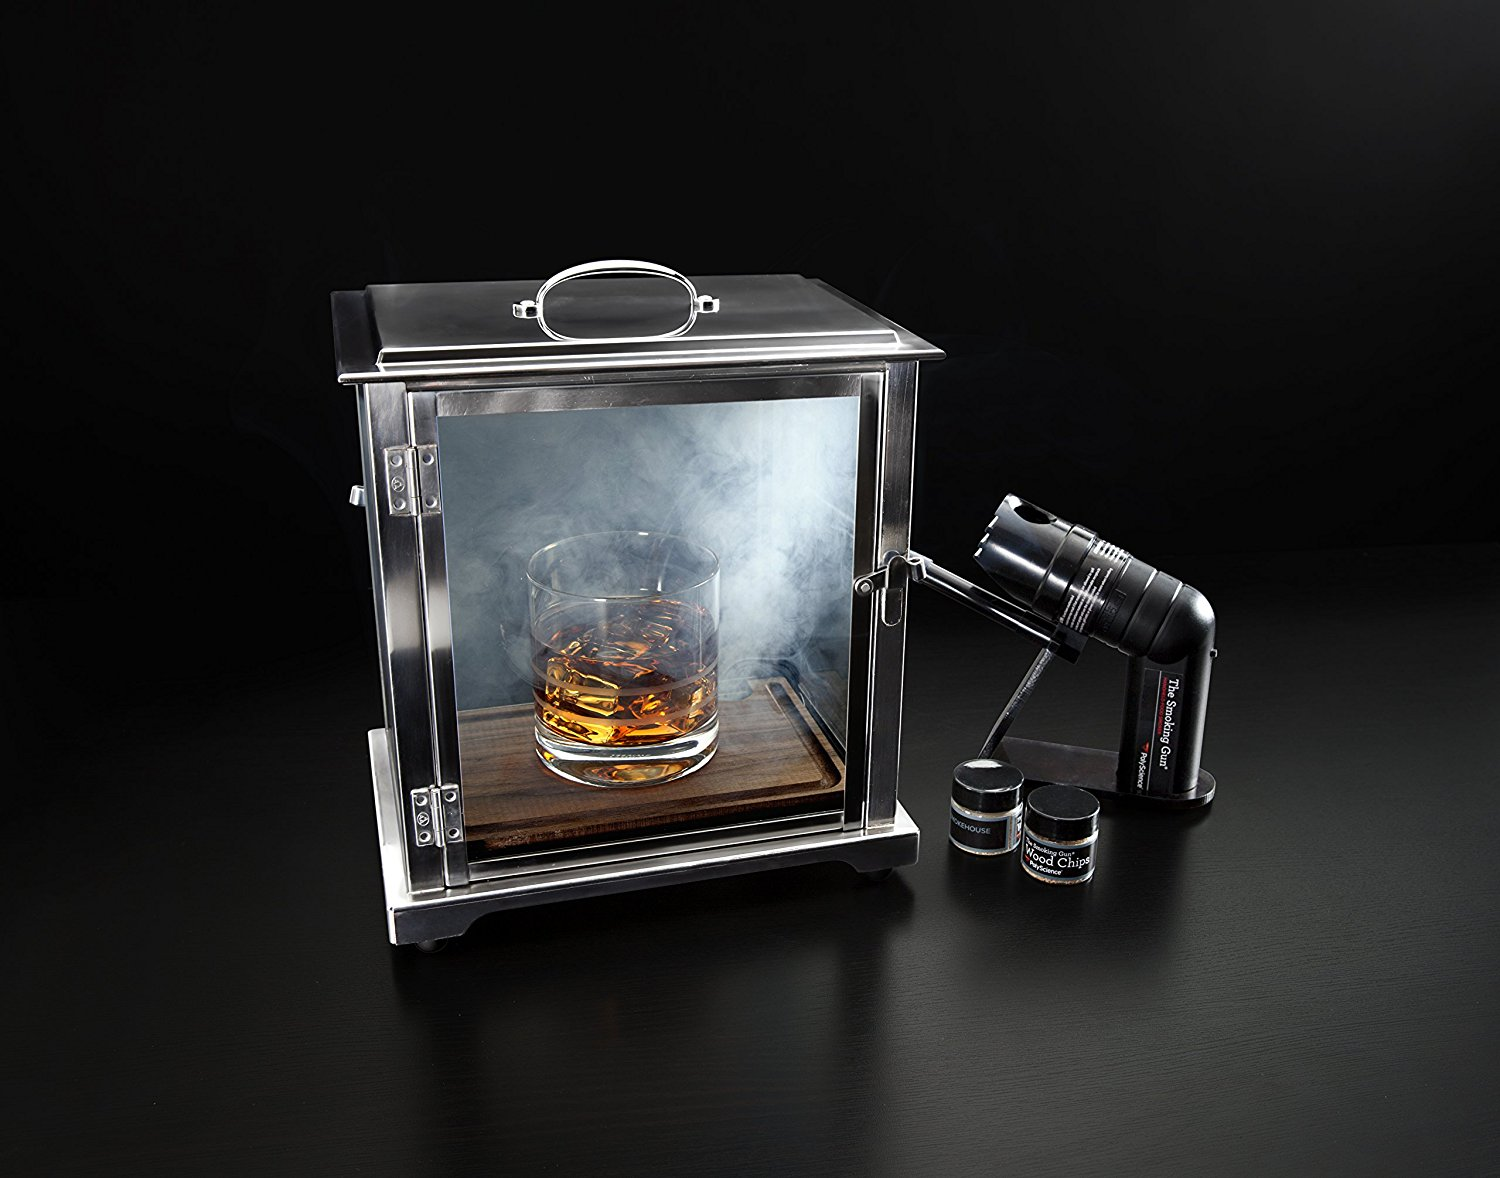 Stainless Steel and Glass Smoking Box with Smoking Gun by Crafthouse by Fortessa